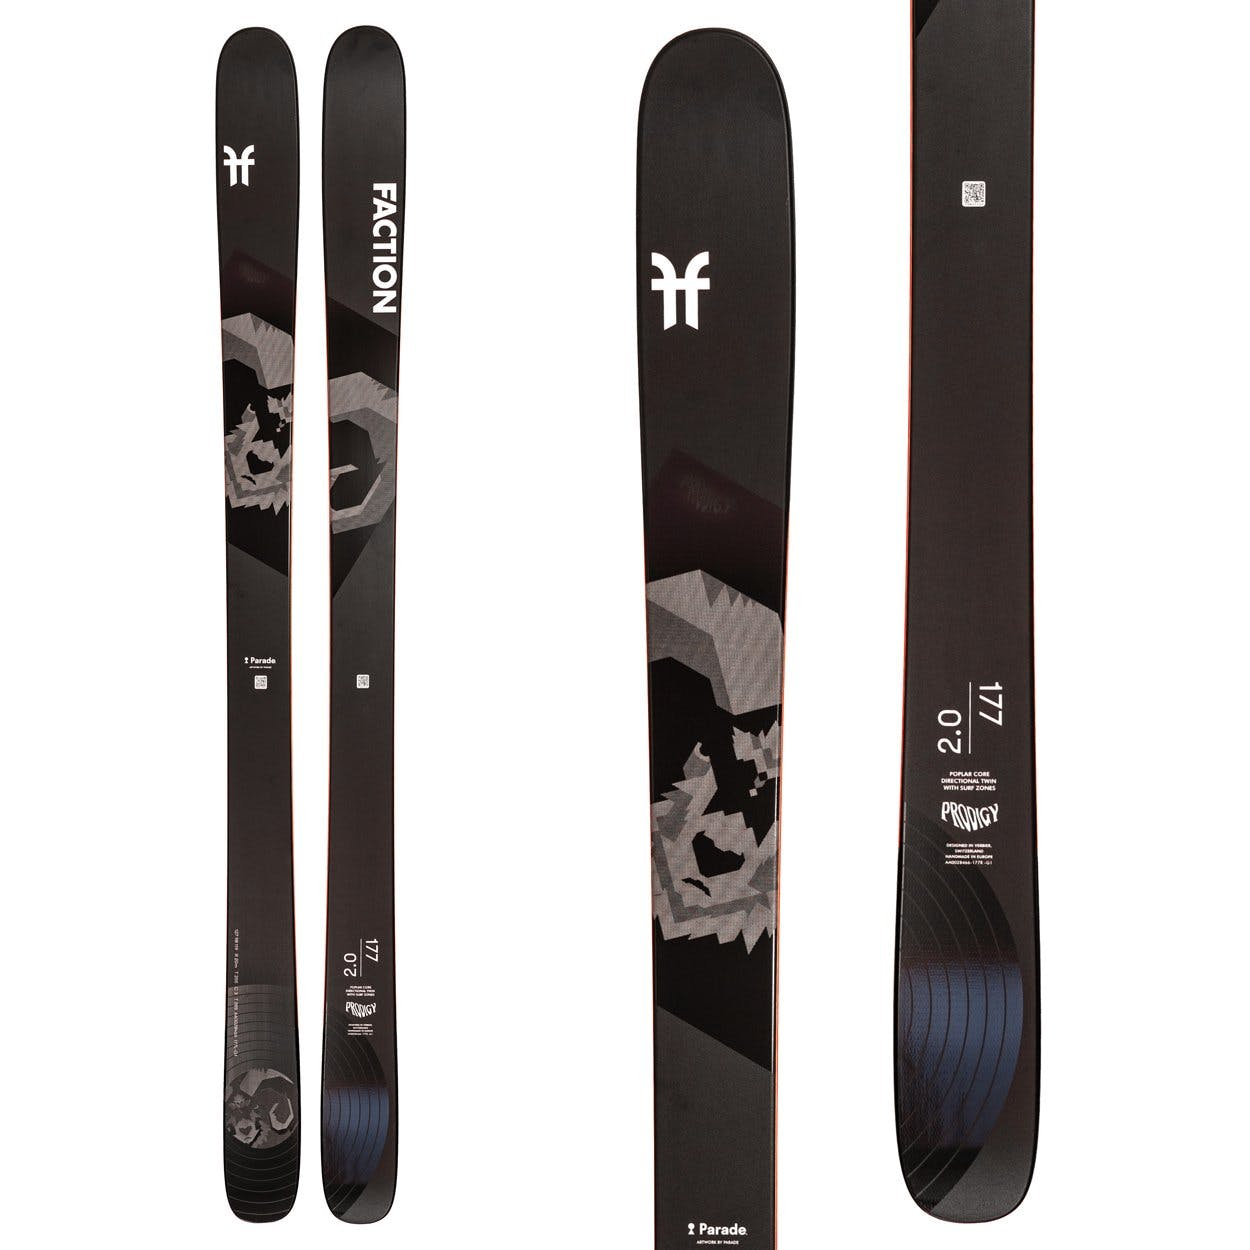 Faction Ski Prodigy 2.0 Skis · 2021